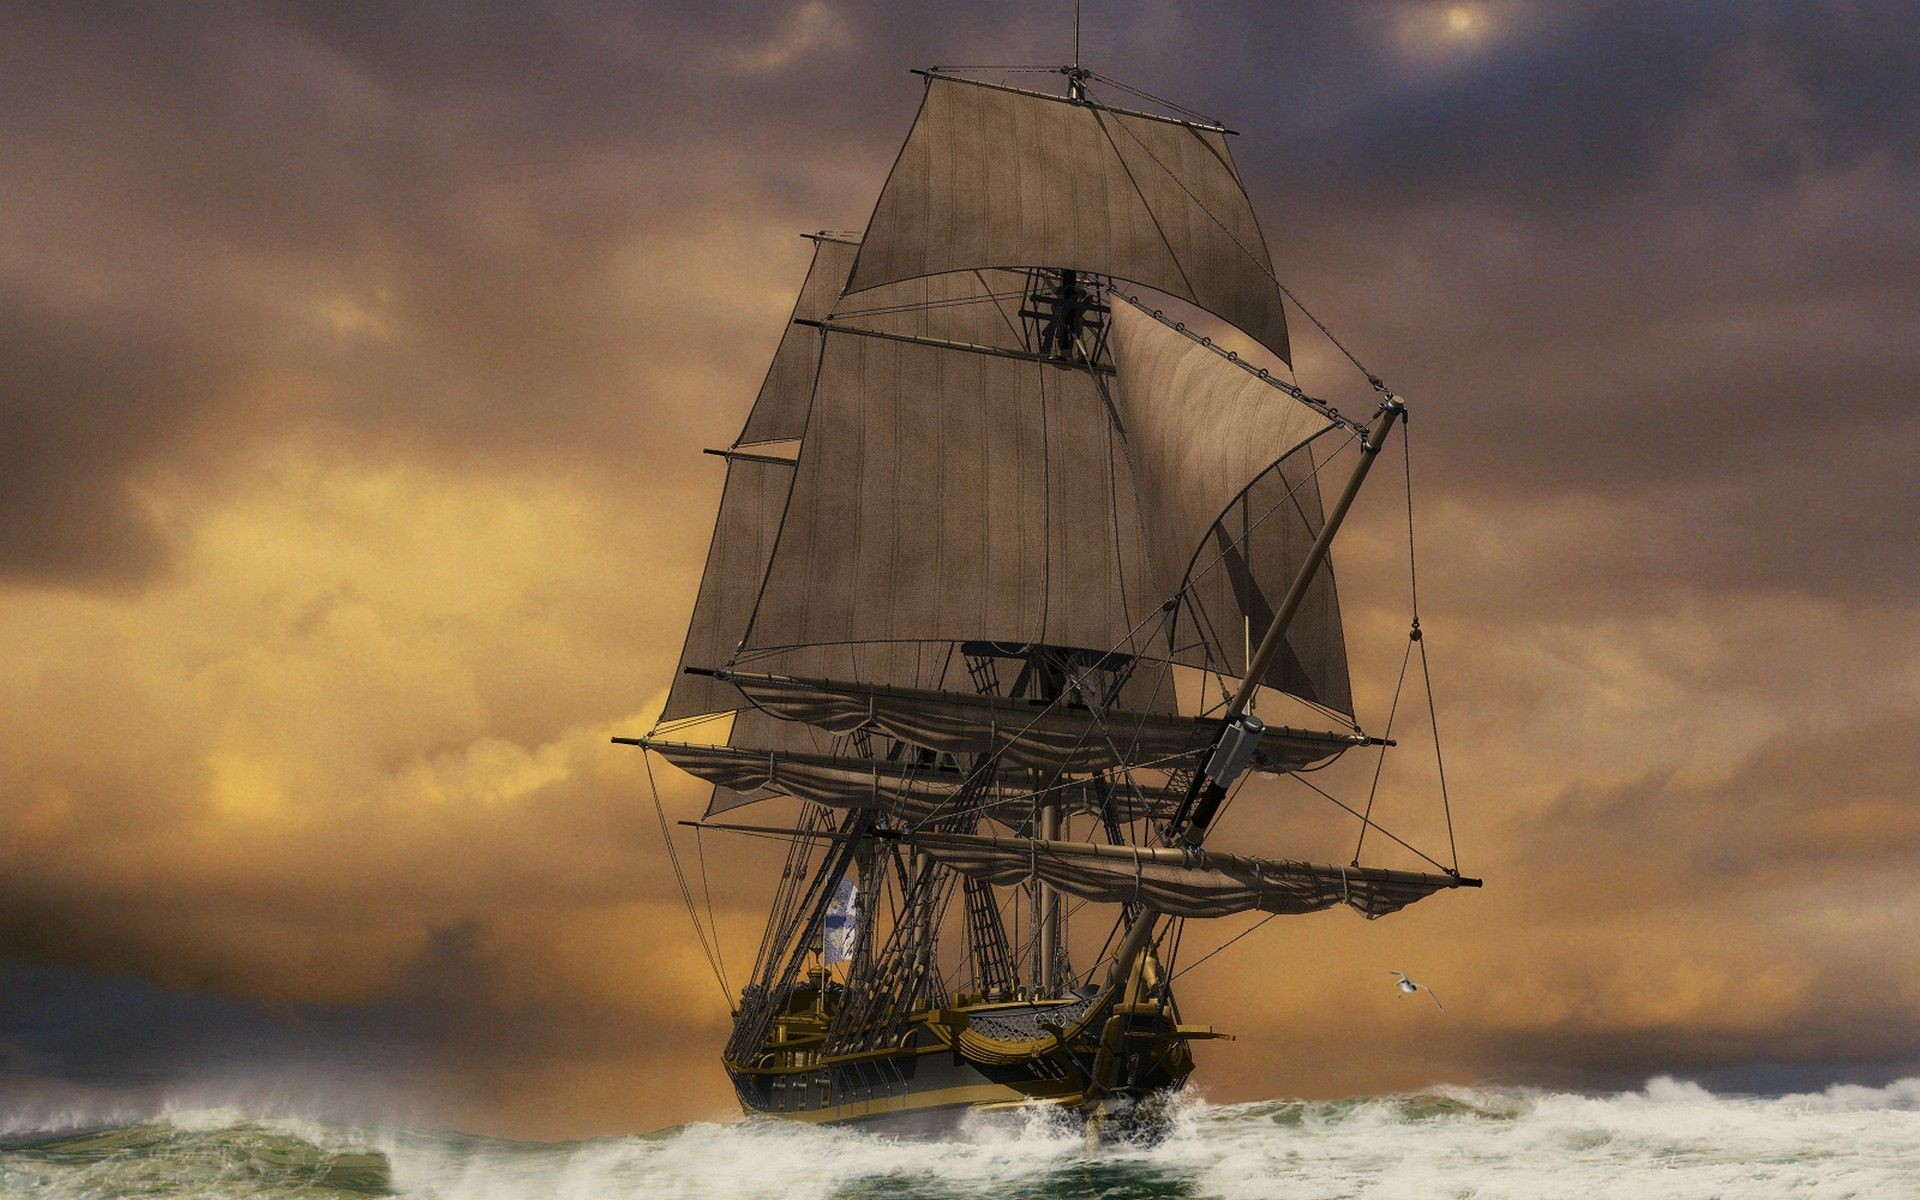 Res: 1920x1200, Sailing Ship Full HD Wallpaper and Background Image |